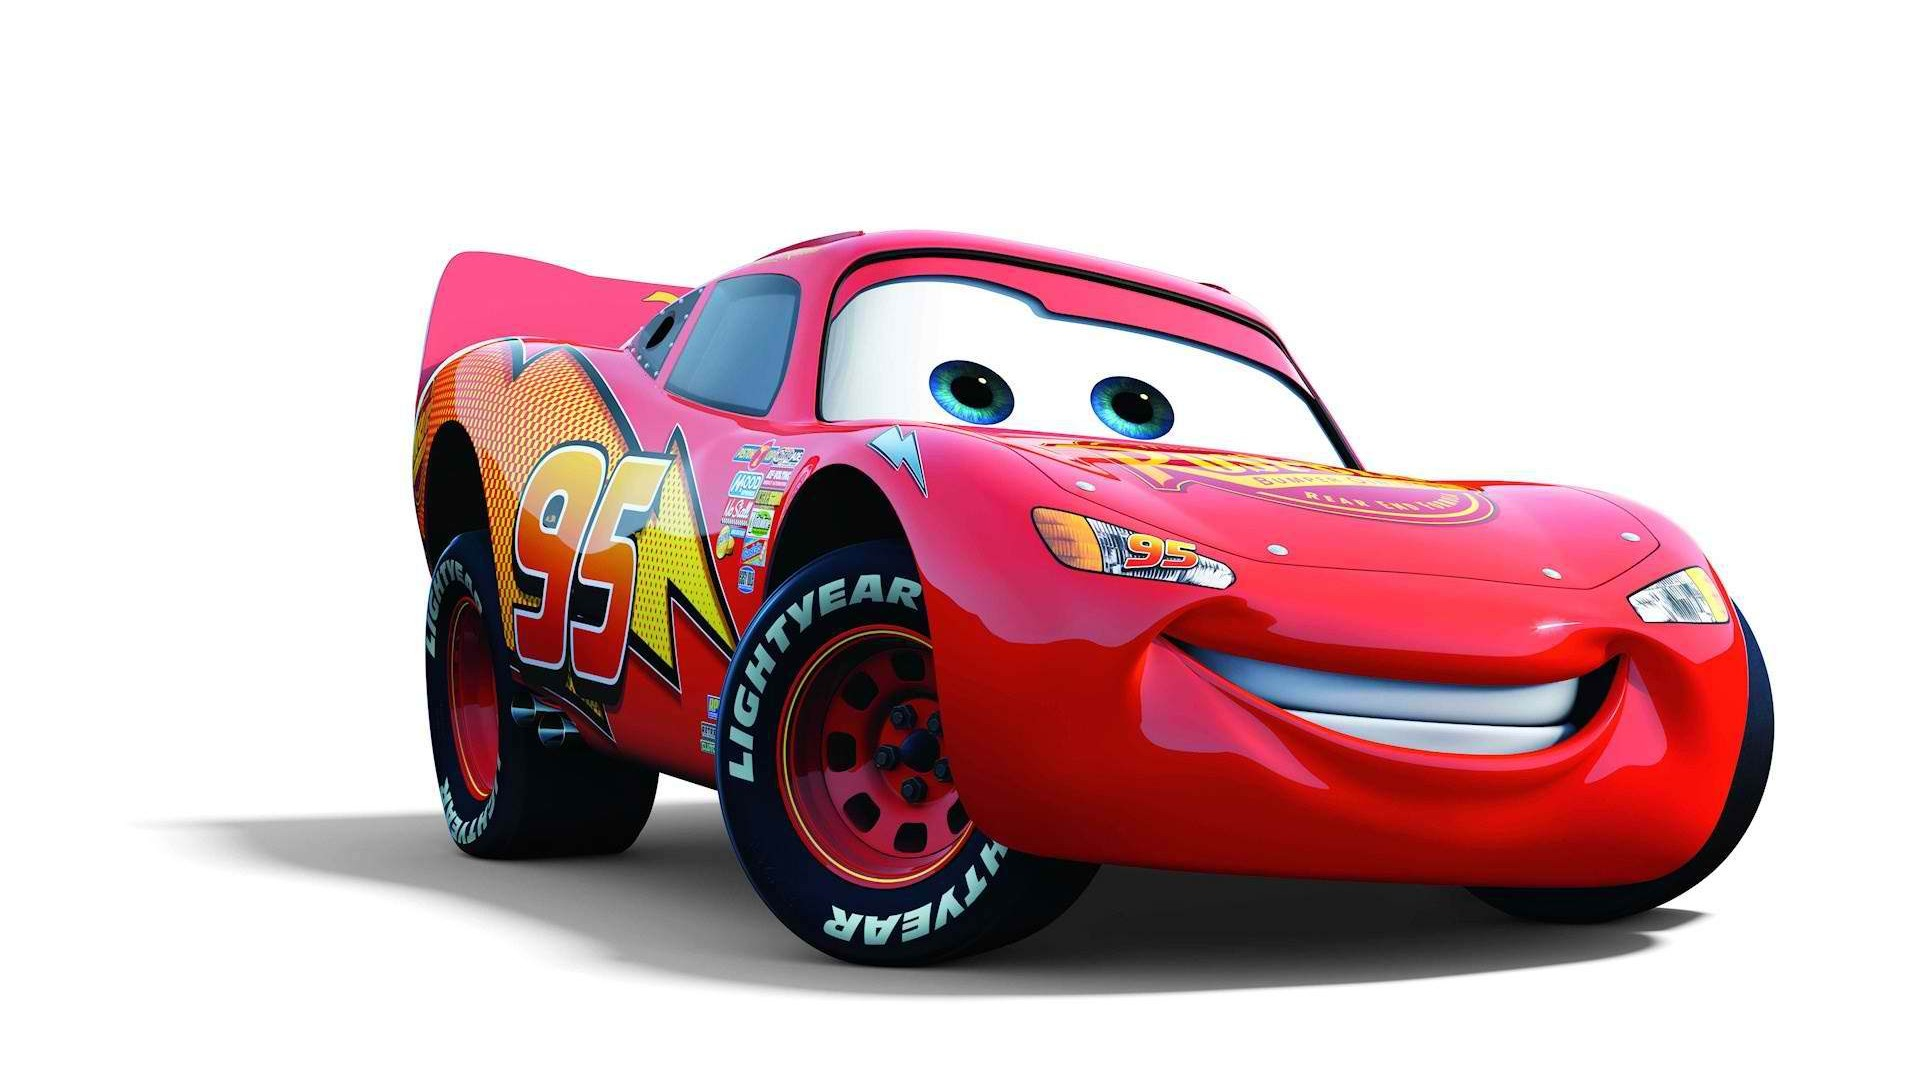 Lightning mcqueen photo - 1